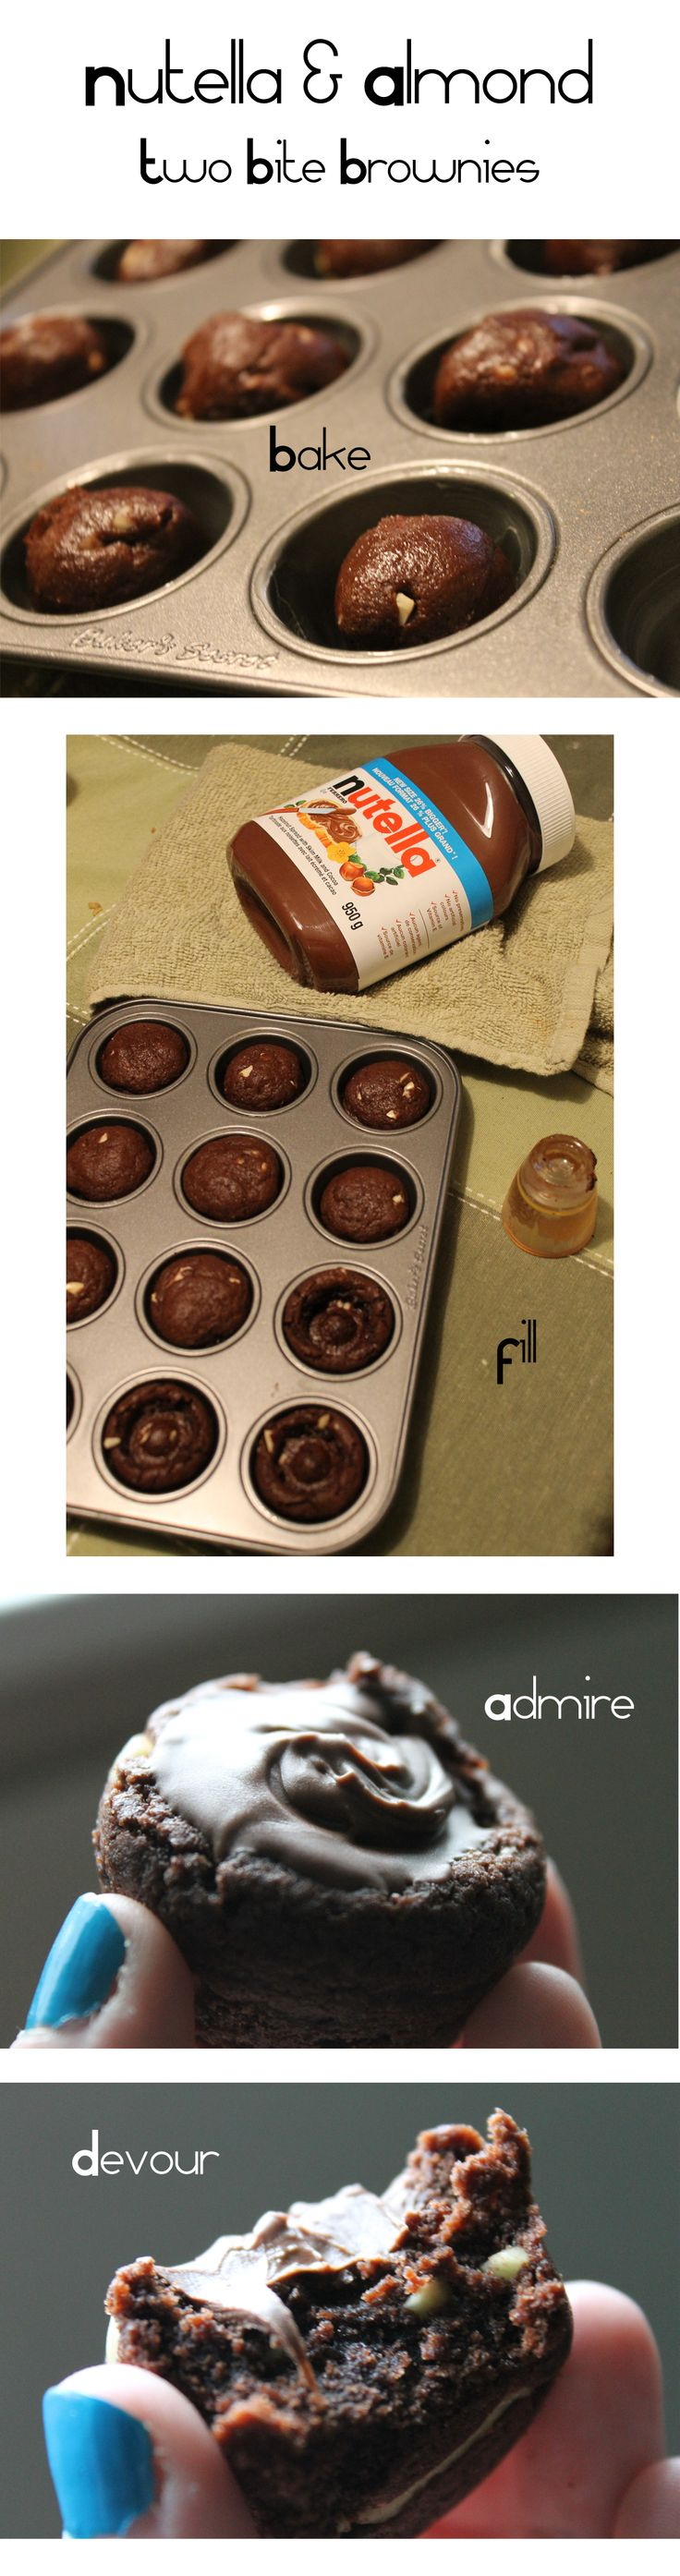 Daisy Chubb's Tea and Treats » Blog Archive » Recipe: Nutella Cookie Cups – Two Bite Brownie Edition!